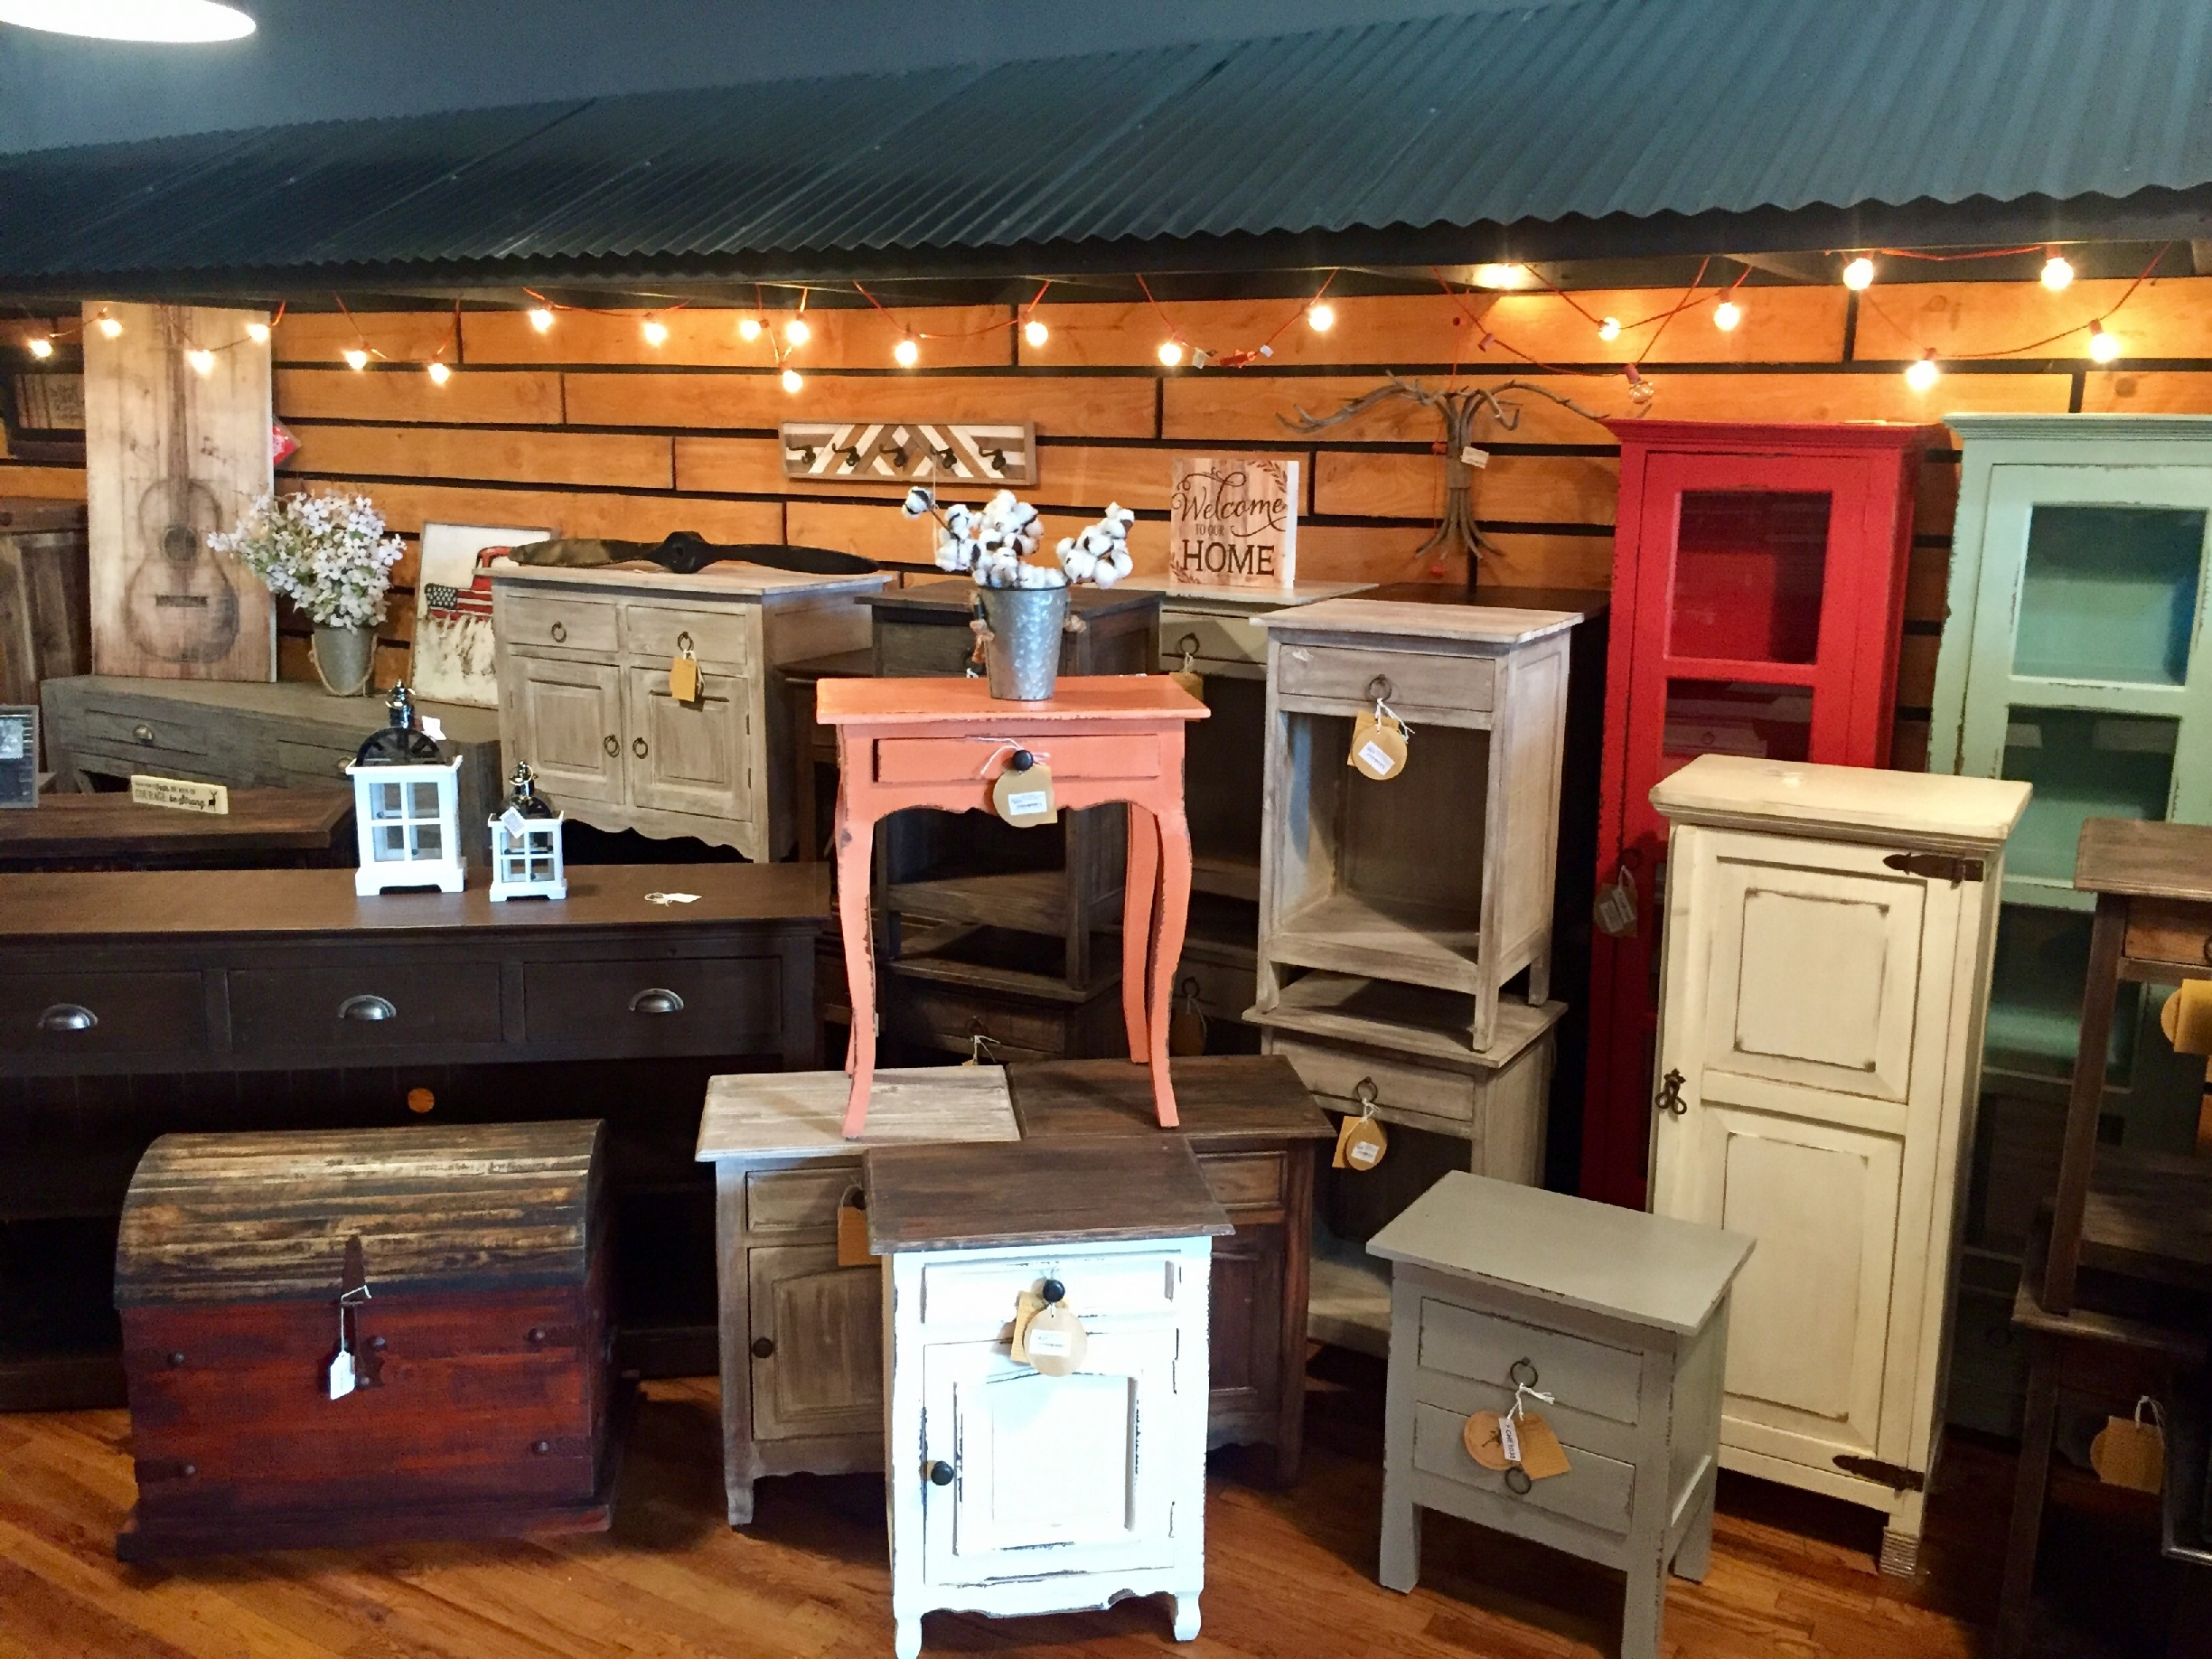 High Quality Welcome To The Website For Adam U0026 Sons, A Store In Downtown Carrollton GA,  Which Sells Rustic Furniture, Home Decor And More!